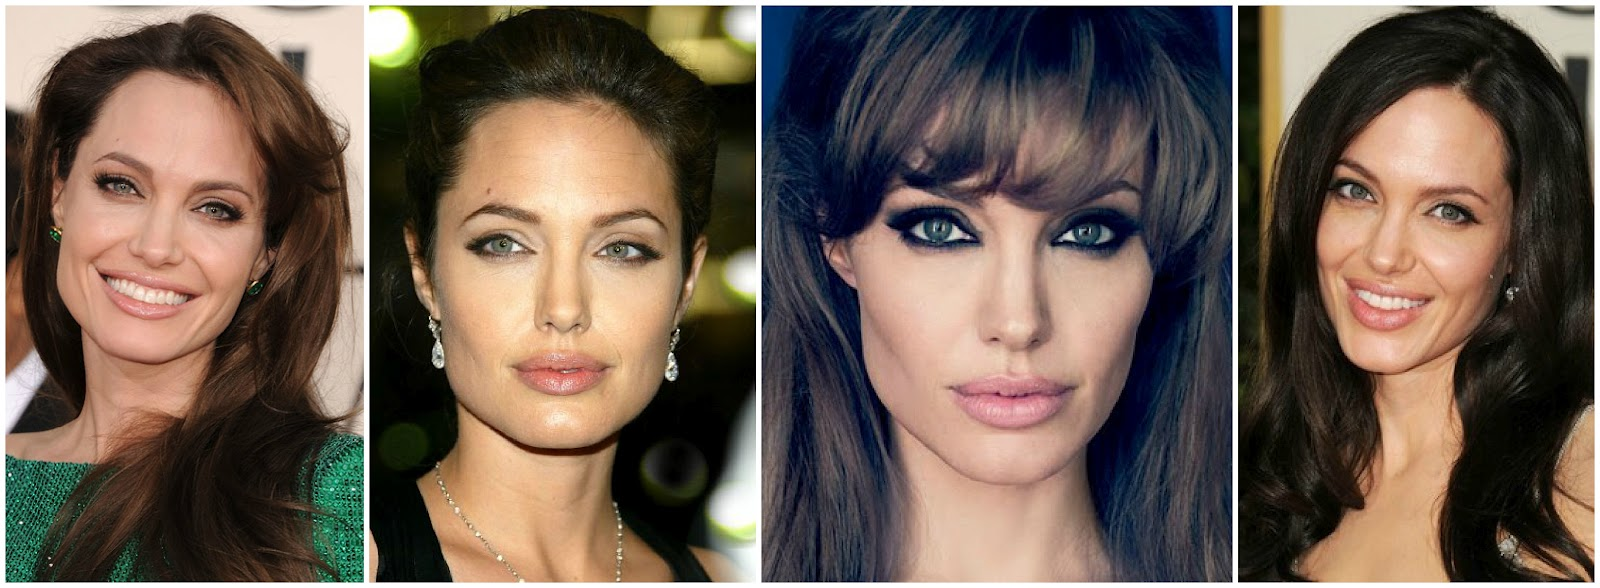 Themakeupchair Hair Styles For Your Faceshape